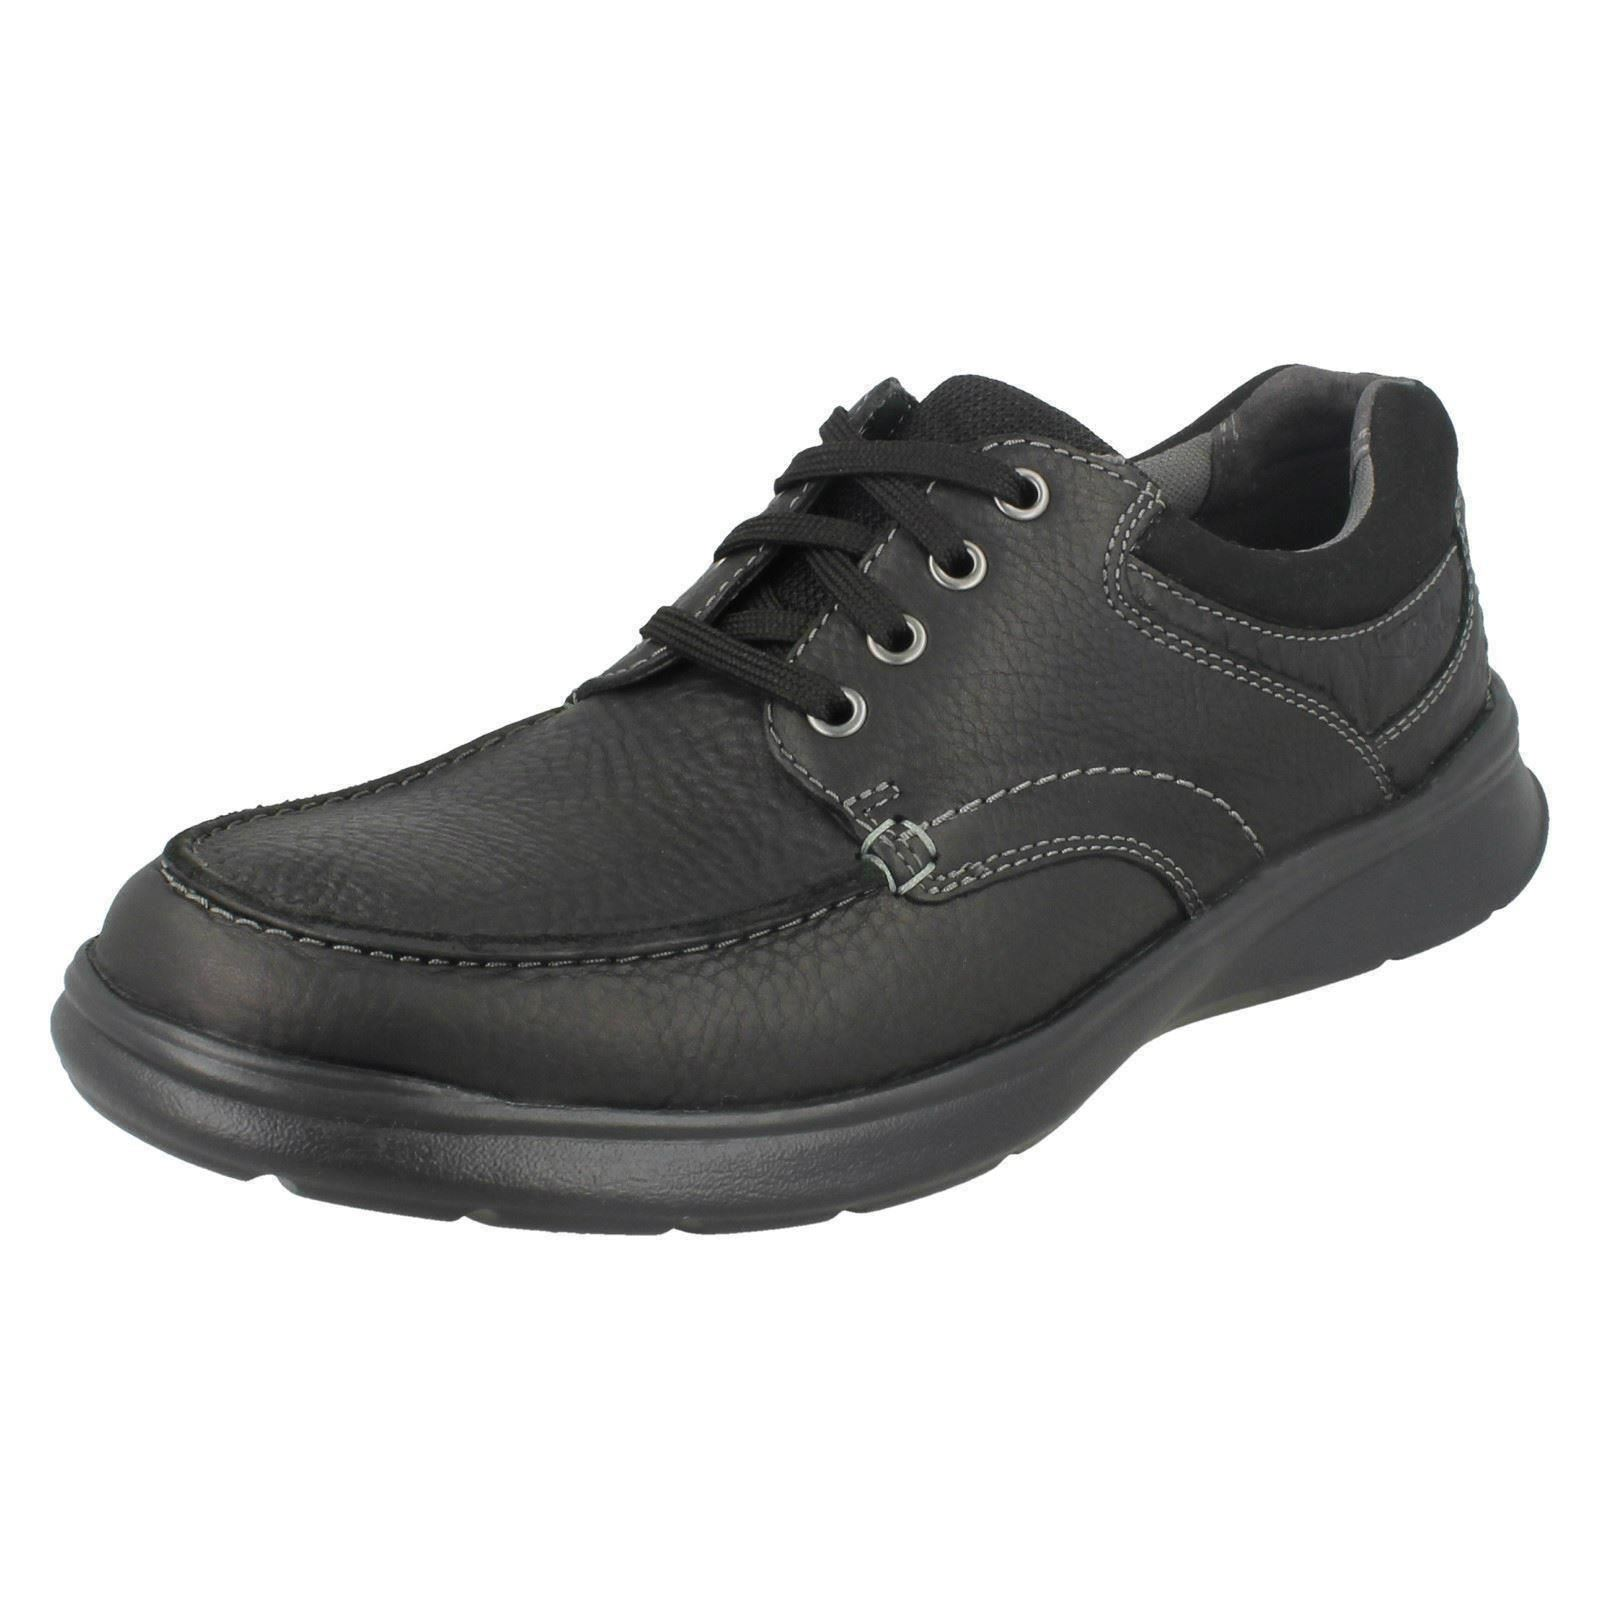 e5fb15611dcc0 Mens Clarks Casual Lace up Shoes Cotrell Edge UK 9 Black G. About this  product. Picture 1 of 7  Picture 2 of 7 ...